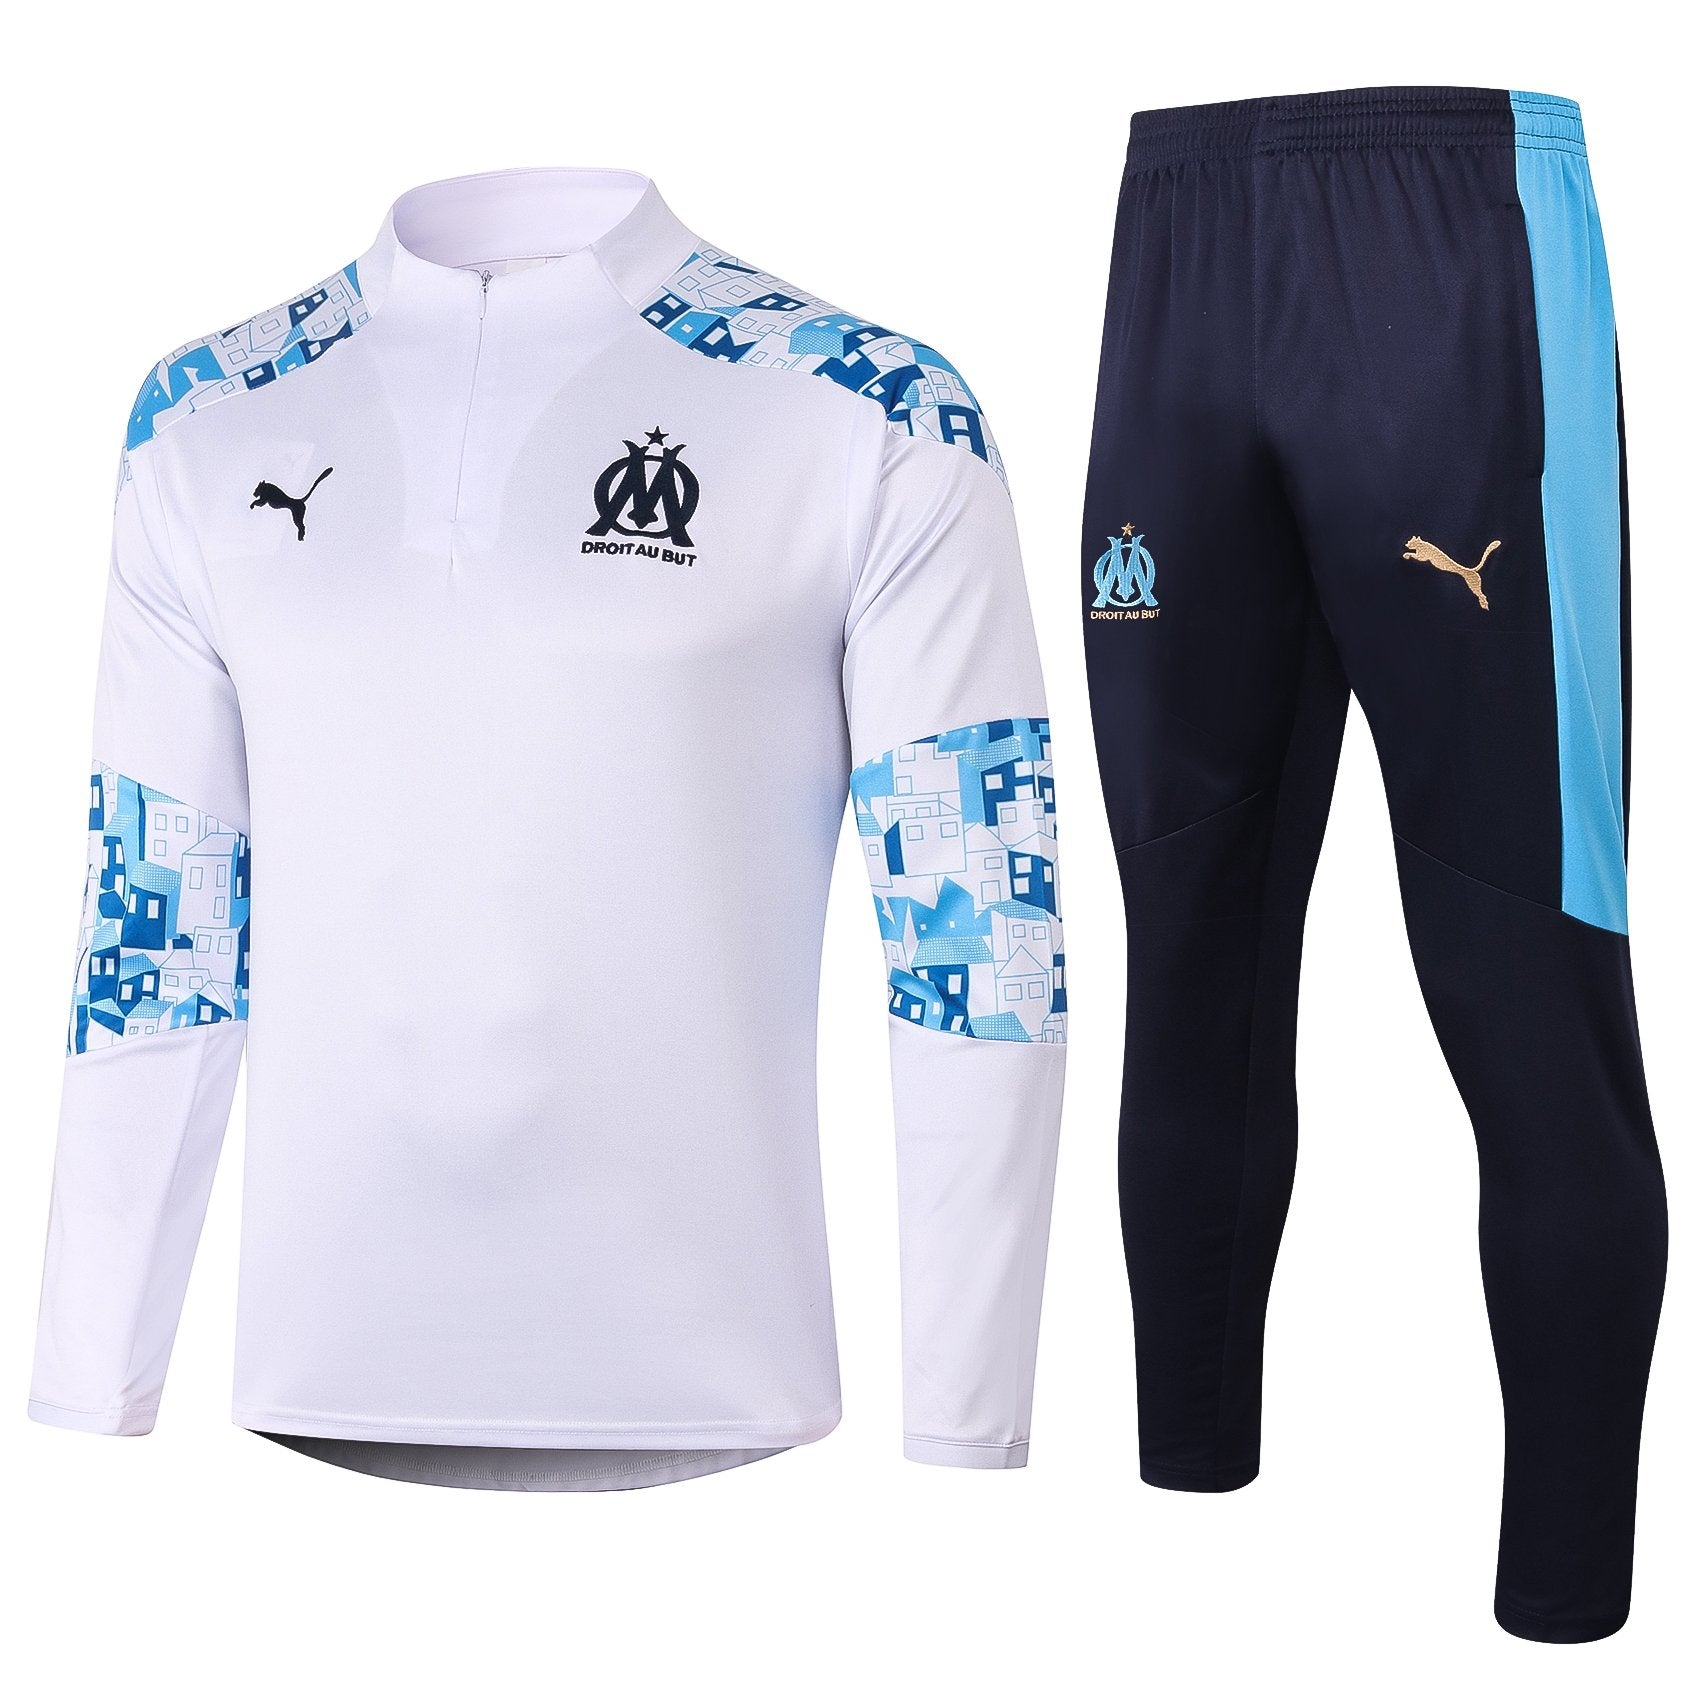 SURVETEMENT MARSEILLE OM PUMA 2021 HOMME SOCCER CENTER